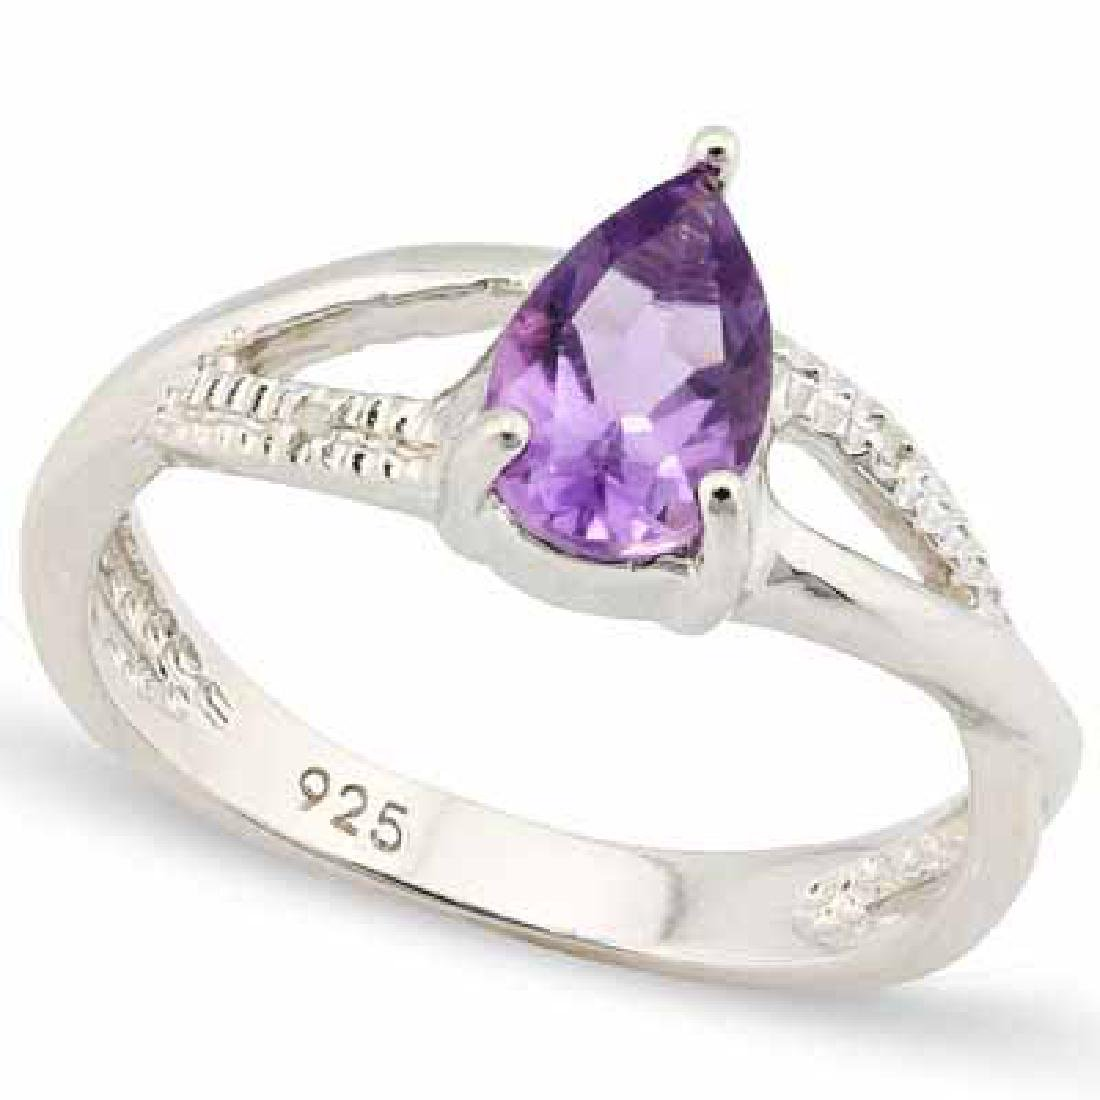 0.812 CARAT TW AMETHYST & GENUINE DIAMOND PLATINUM OVER